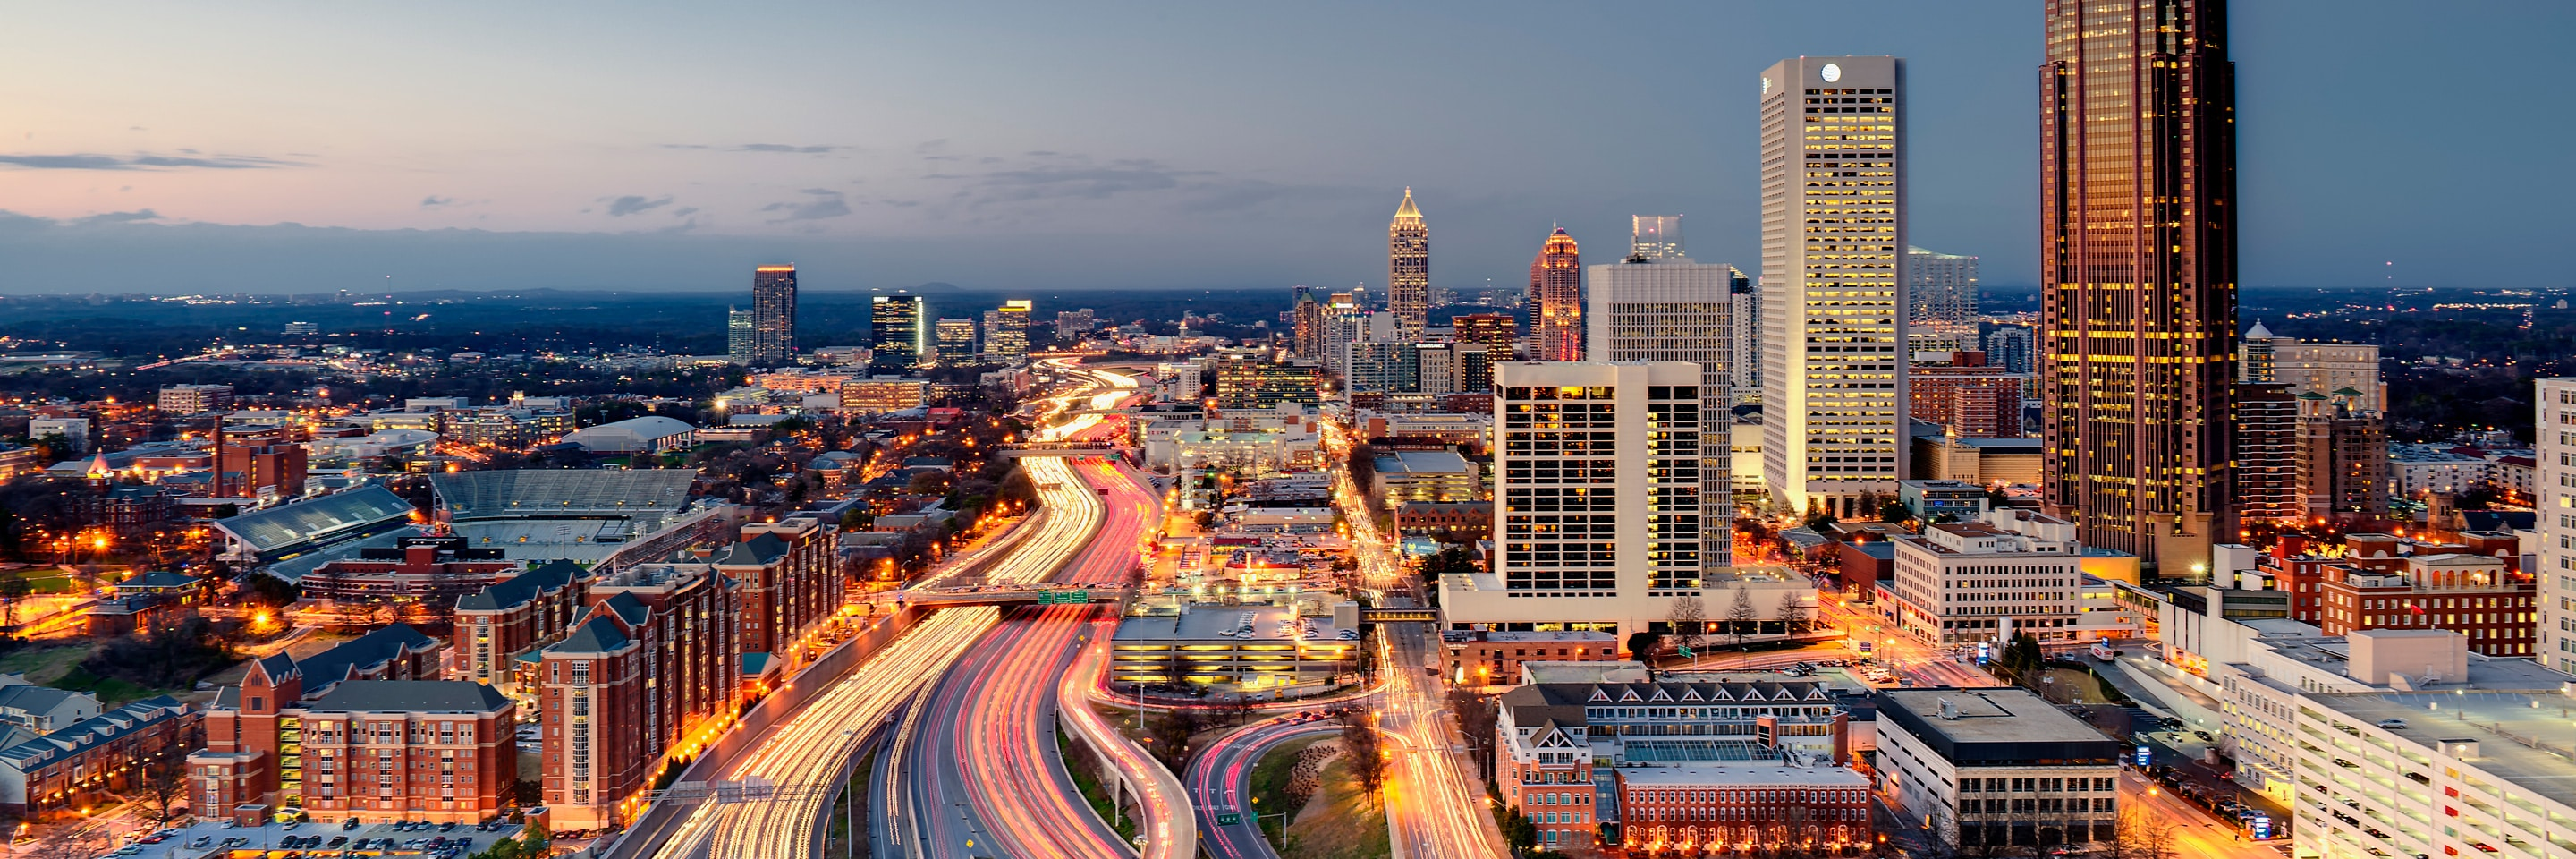 Hotels in Atlanta finden | Marriott